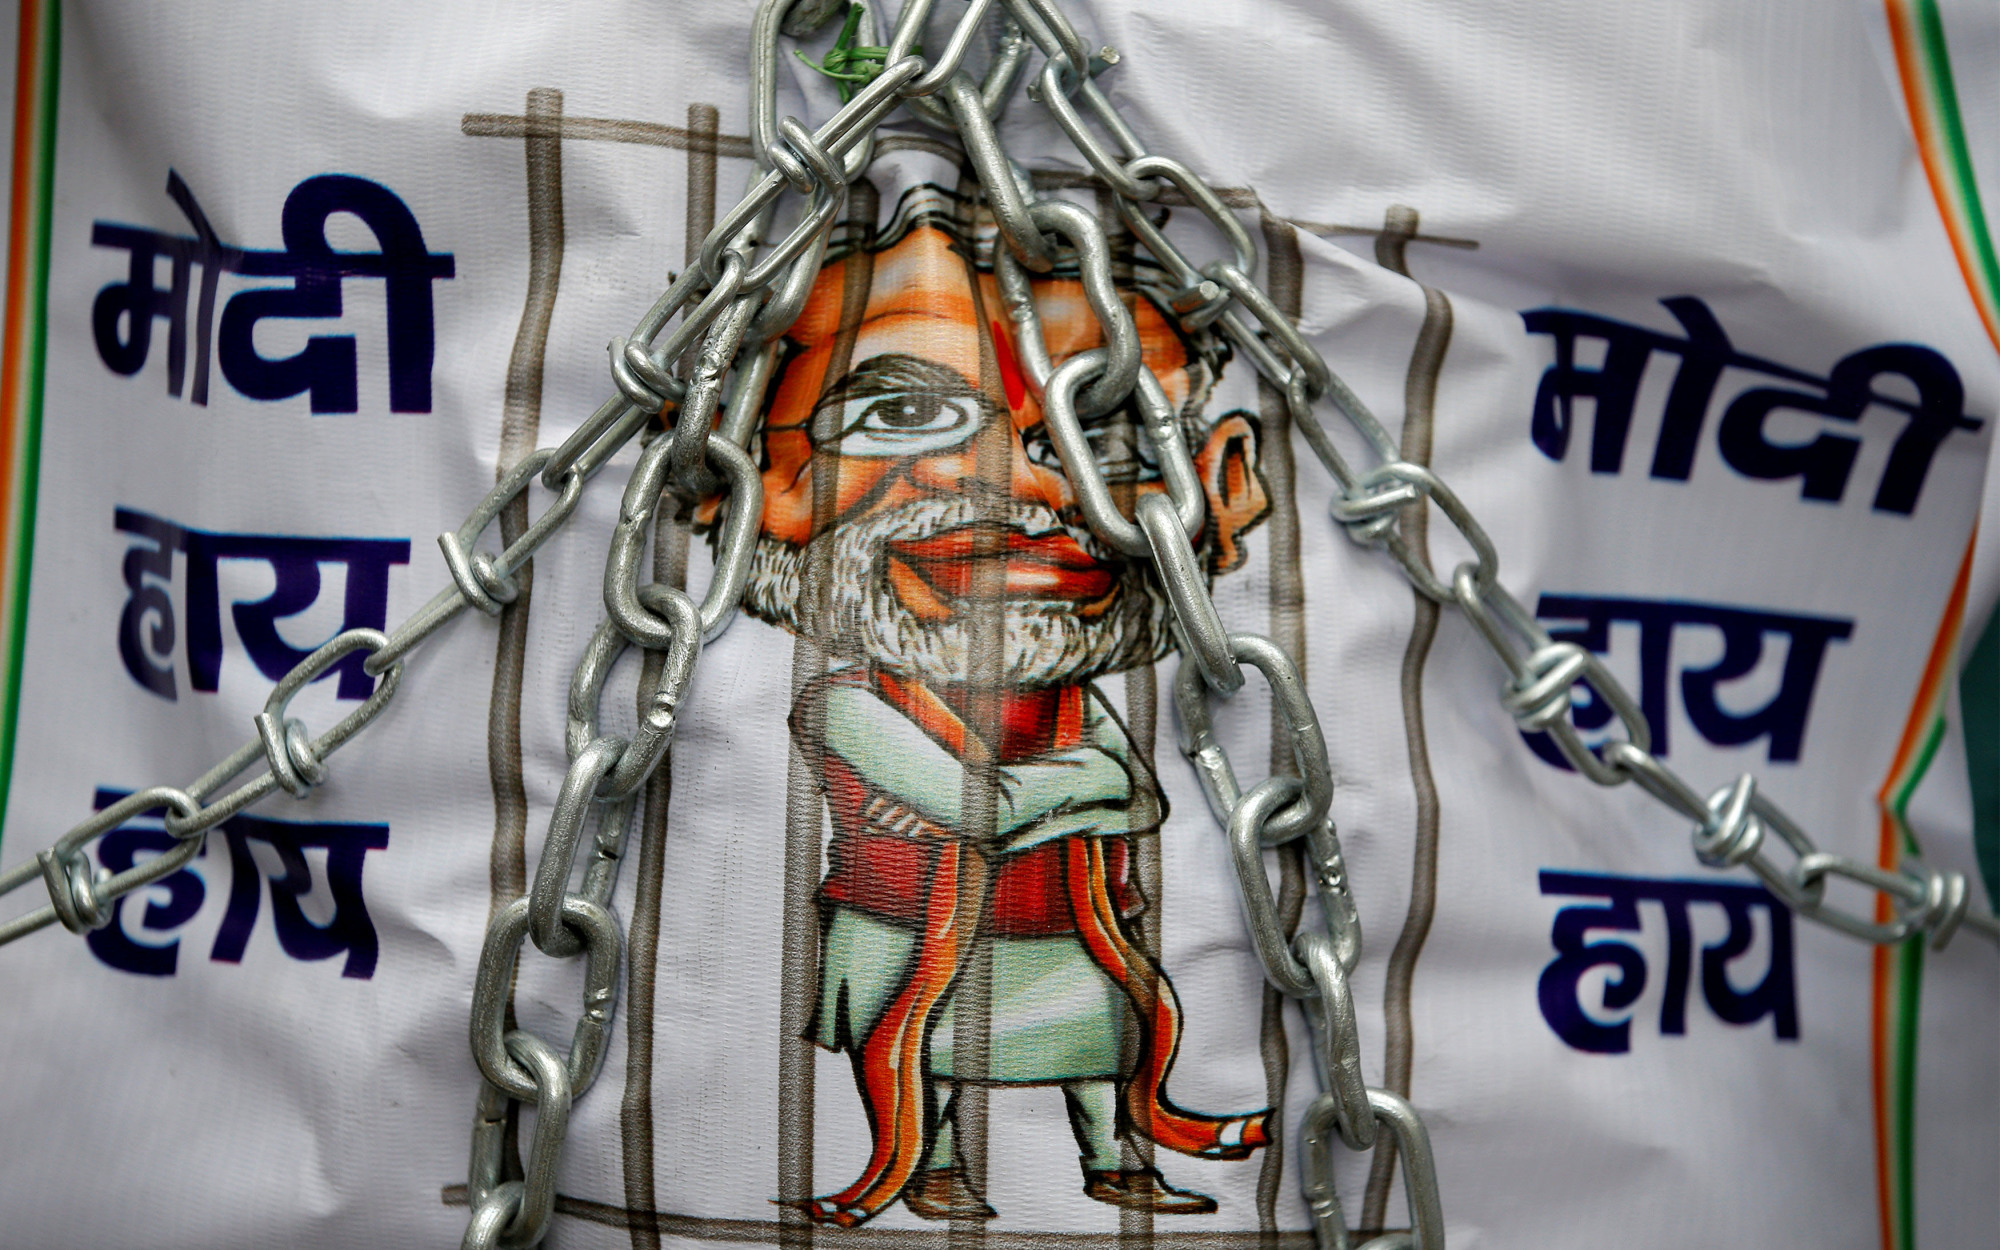 A banner depicting Indian Prime Minister Narendra Modi in prison is displayed during a protest against the introduction of the goods and services tax (GST) in New Delhi  on July 18. | REUTERS